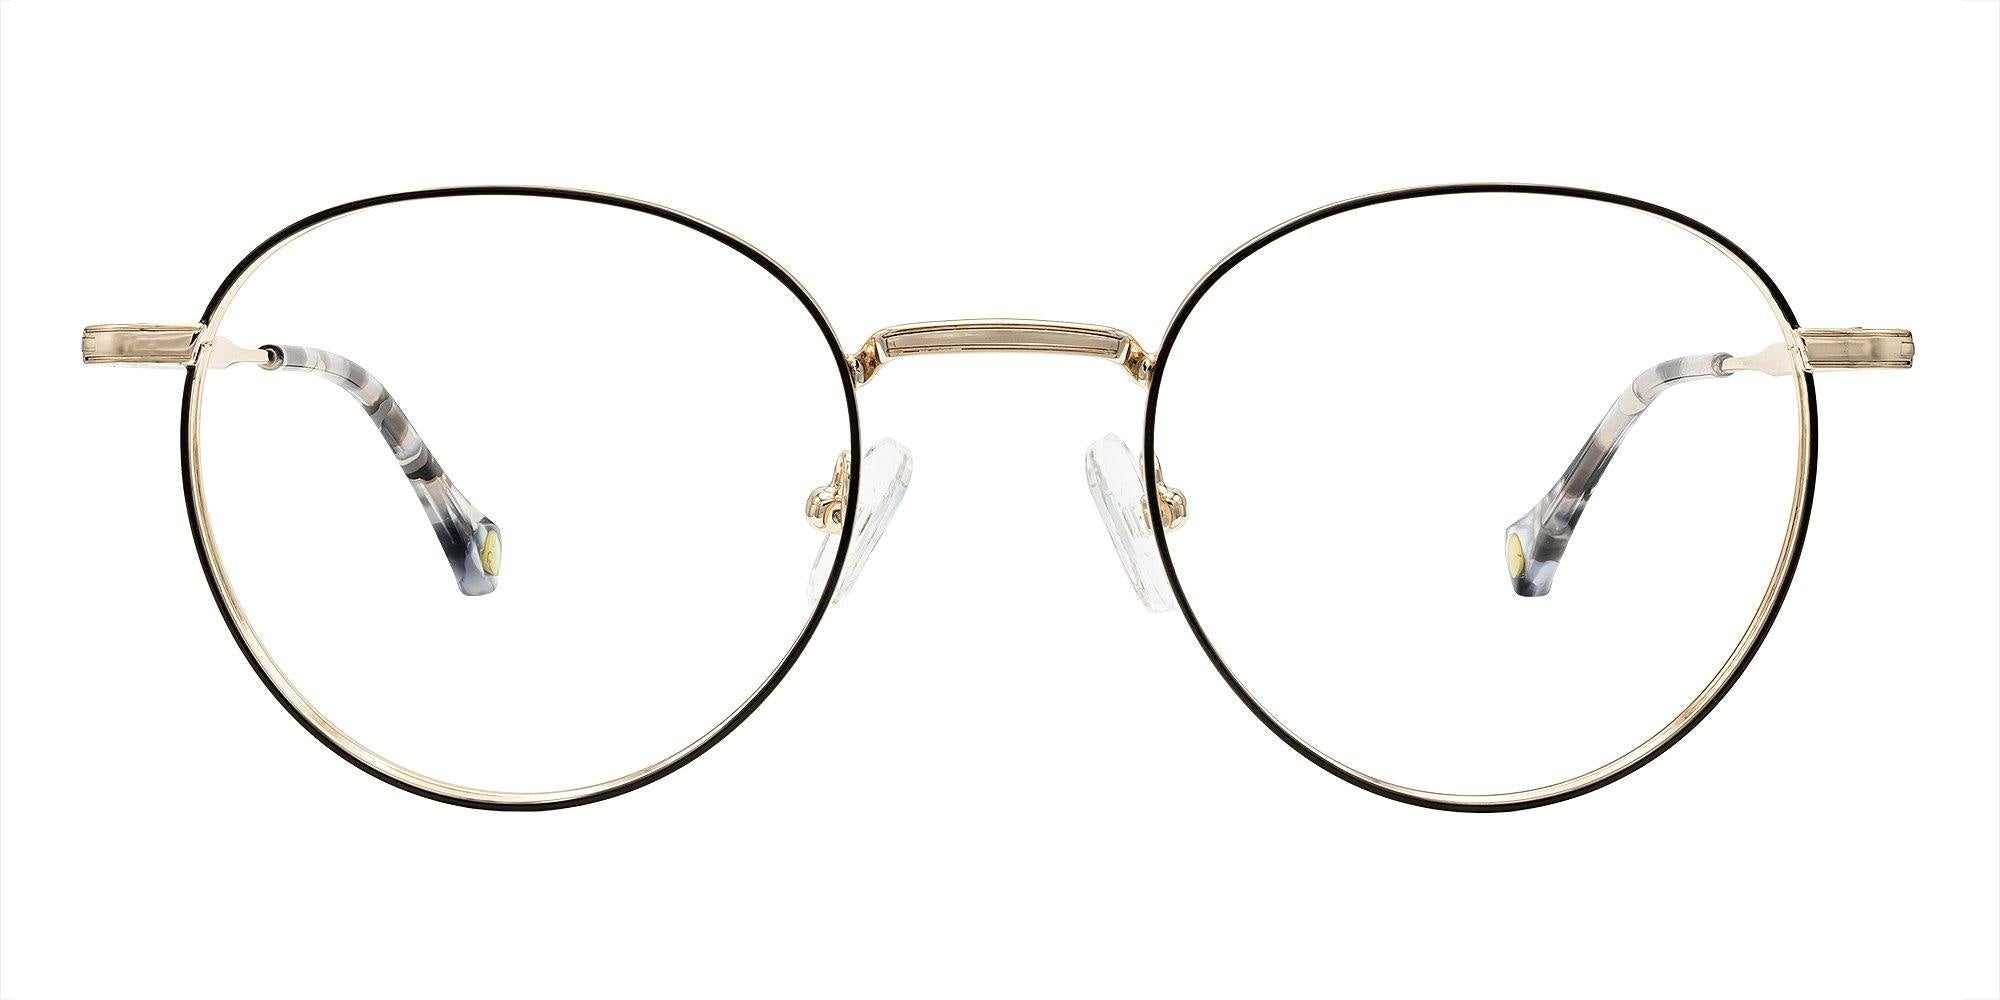 ELLA - Willow Mae Eyewear